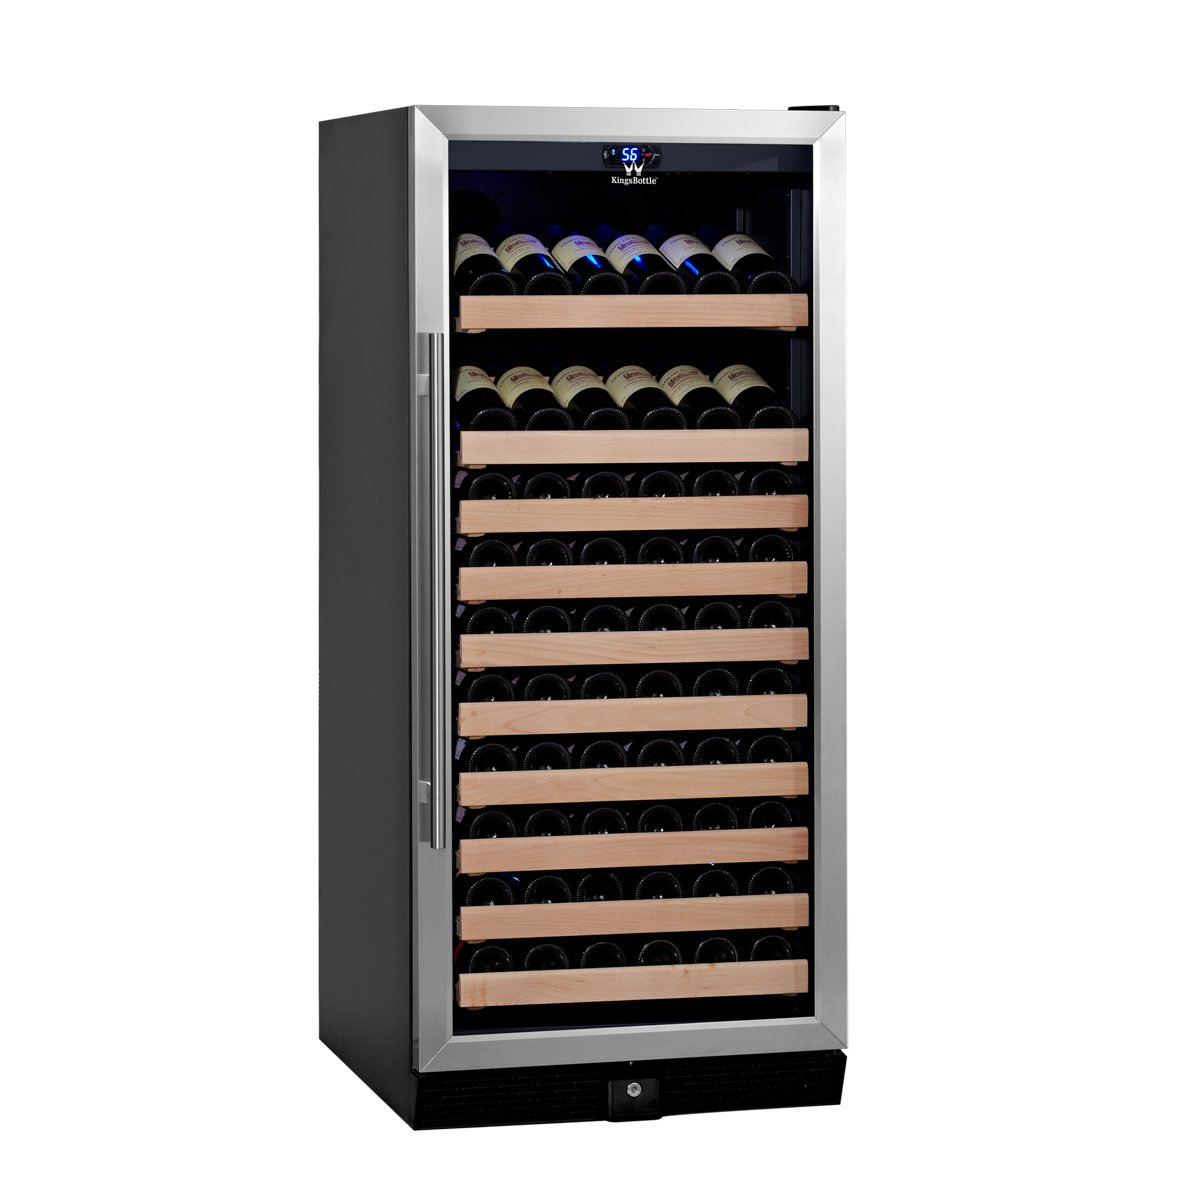 KingsBottle 98 Bottle Single Zone Wine Cooler, Stainless Steel with Glass Door by KingsBottle